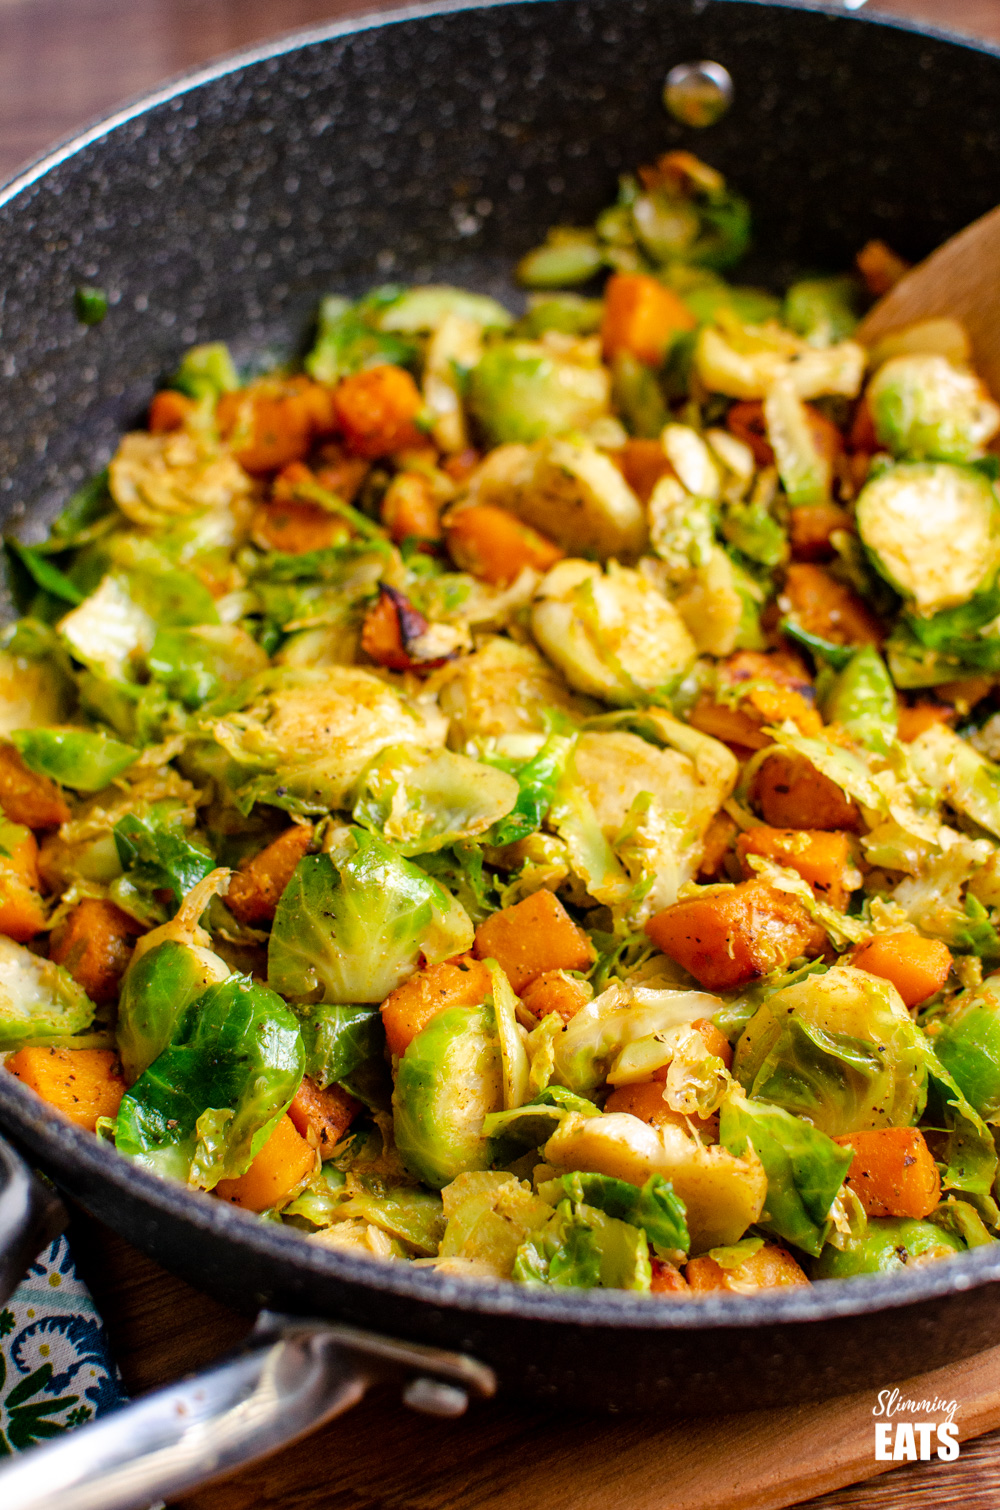 Sautéed Brussel Sprouts with Roasted Butternut Squash in black frying pan